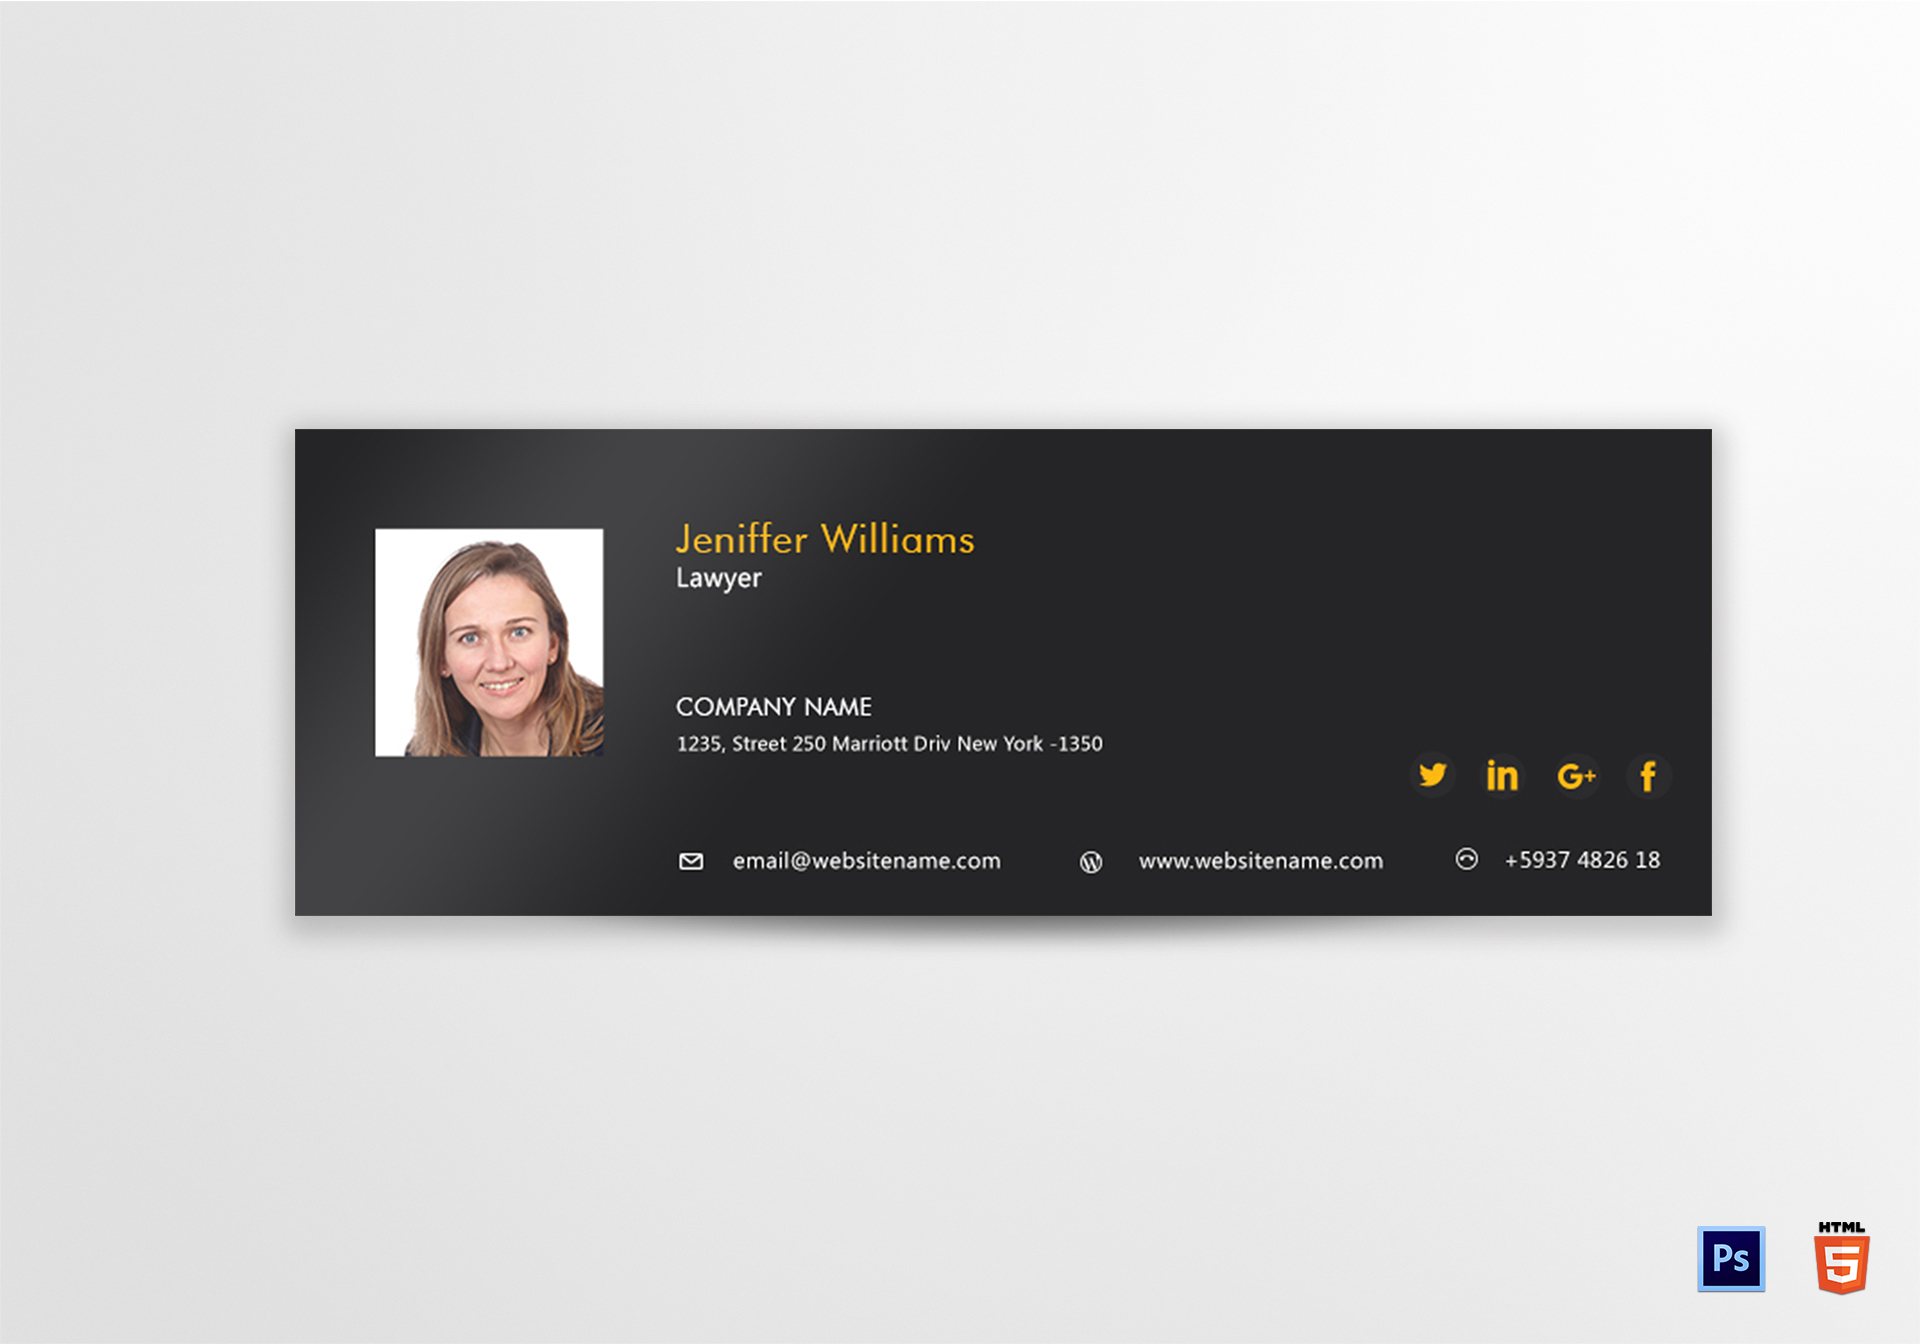 Lawyer Email Signature Design Template in PSD, HTML